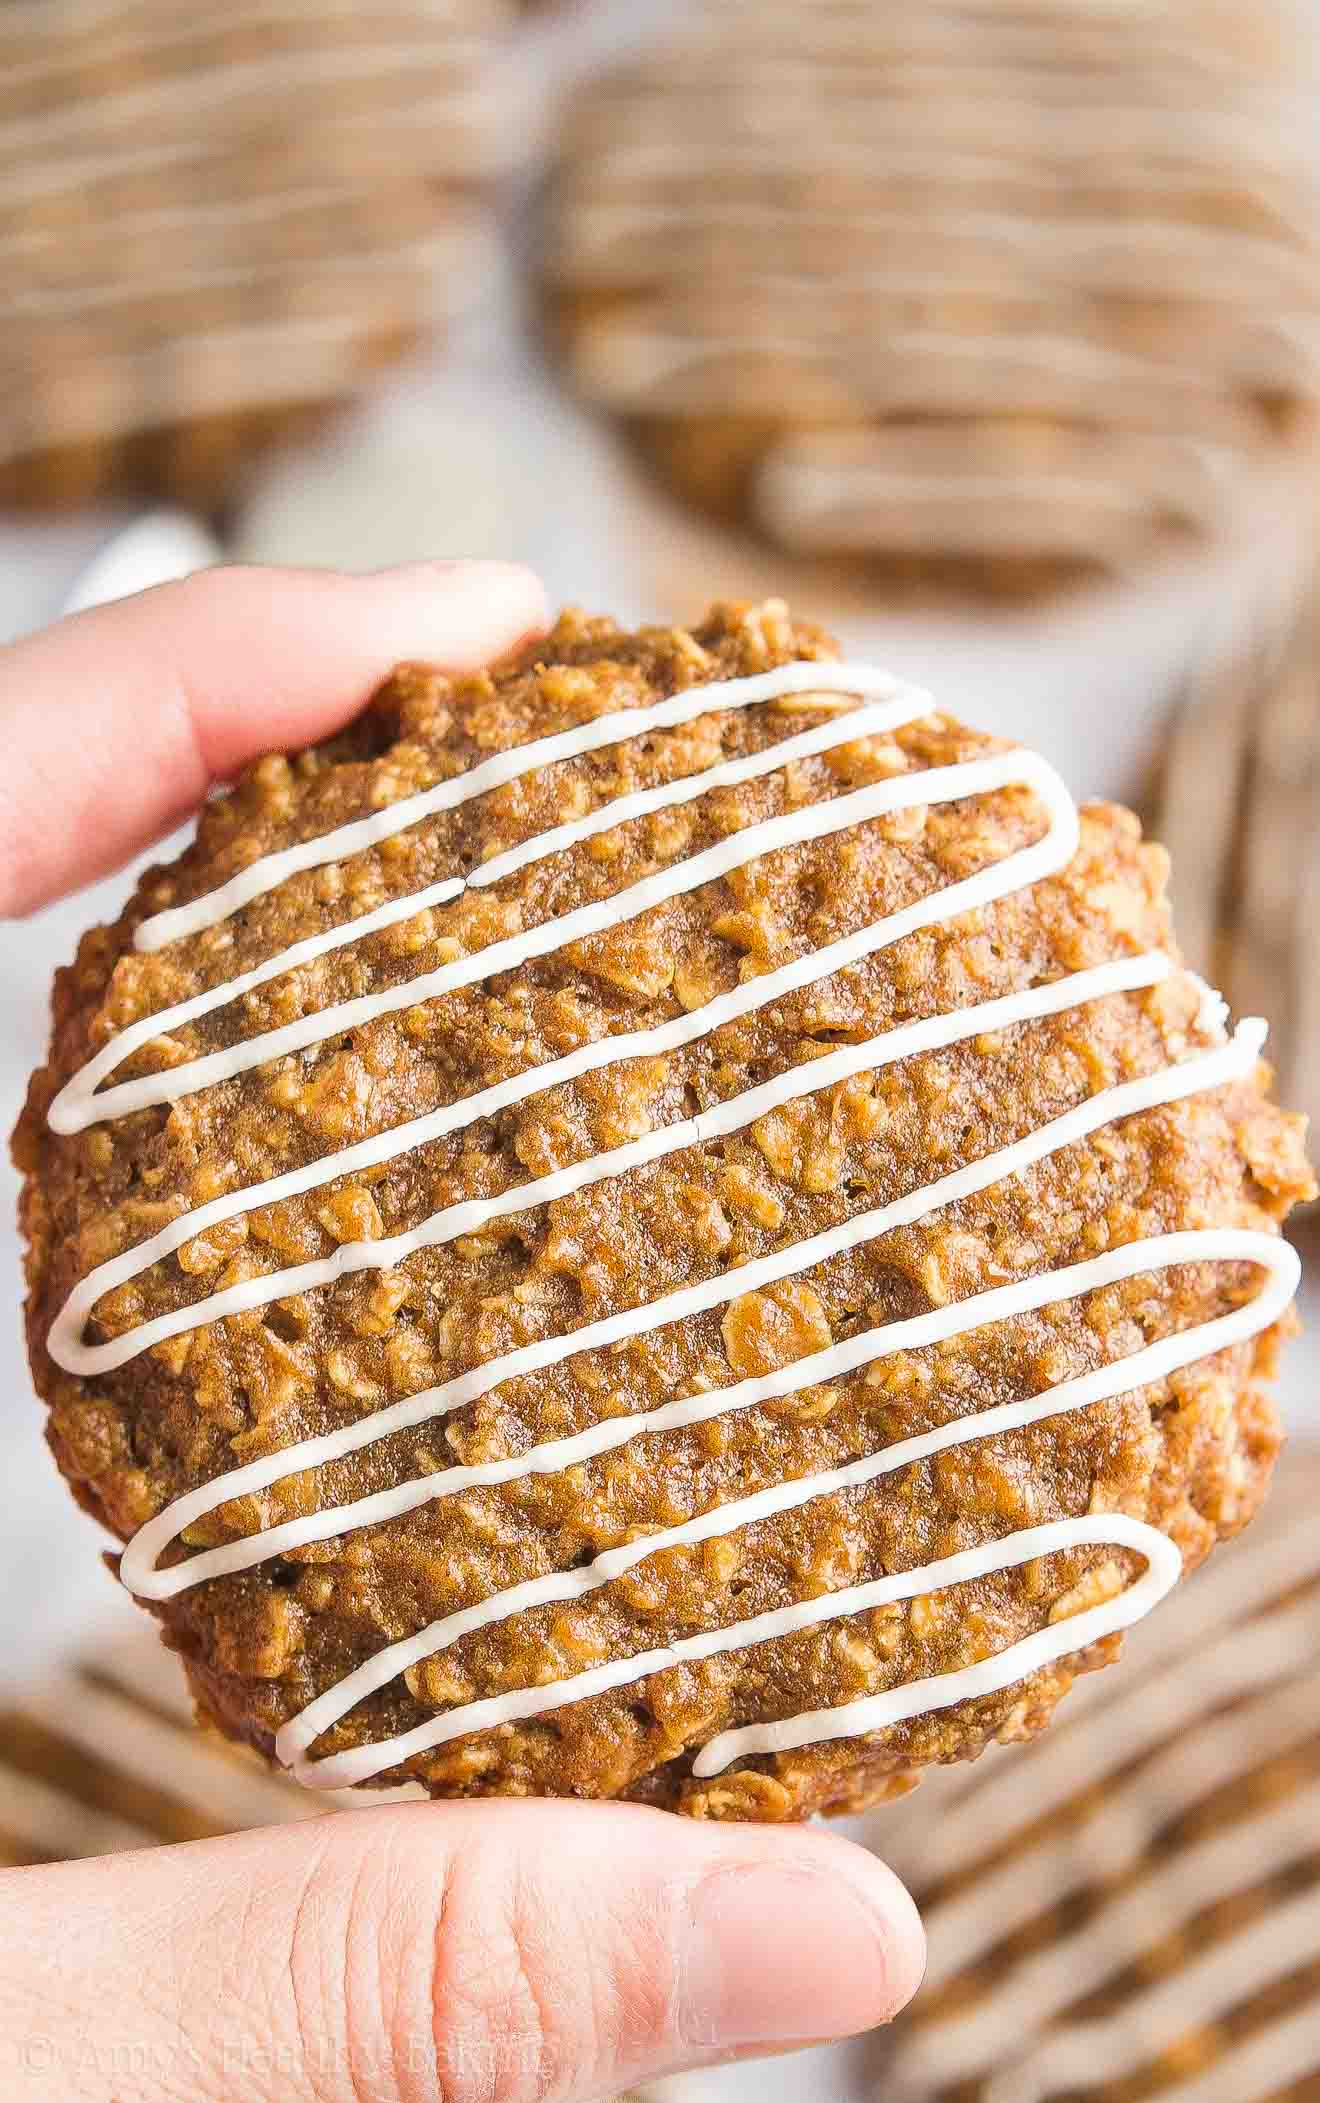 {HEALTHY!} Iced Gingerbread Oatmeal Cookies -- only 89 calories! Soft, chewy & full of cozy spices! I'm OBSESSED with this easy recipe! It's a holiday staple at my house!